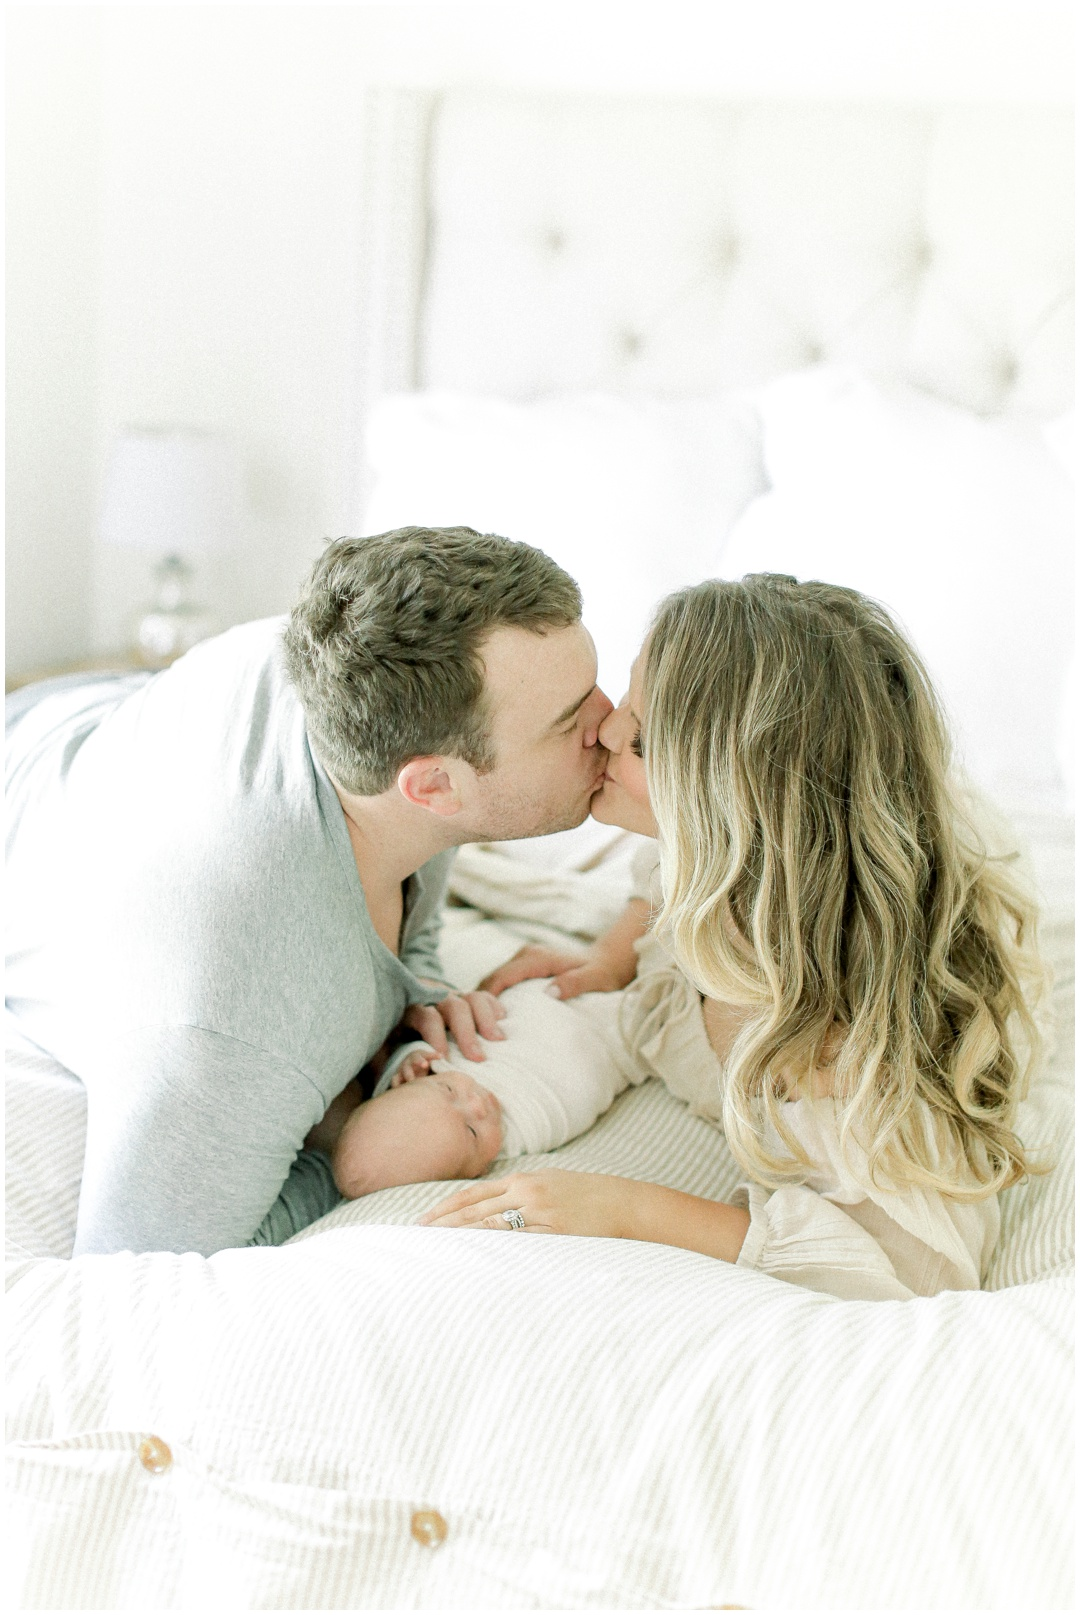 Newport_Beach_Newborn_Light_Airy_Natural_Photographer_Newport_Beach_In-Home_Photographer_Orange_County_Family_Photographer_Cori_Kleckner_Photography_Huntington_Beach_Photographer_Family_OC_Newborn_Meghan_Sullivan_Newborn_Family_Greer_Sullivan_3247.jpg